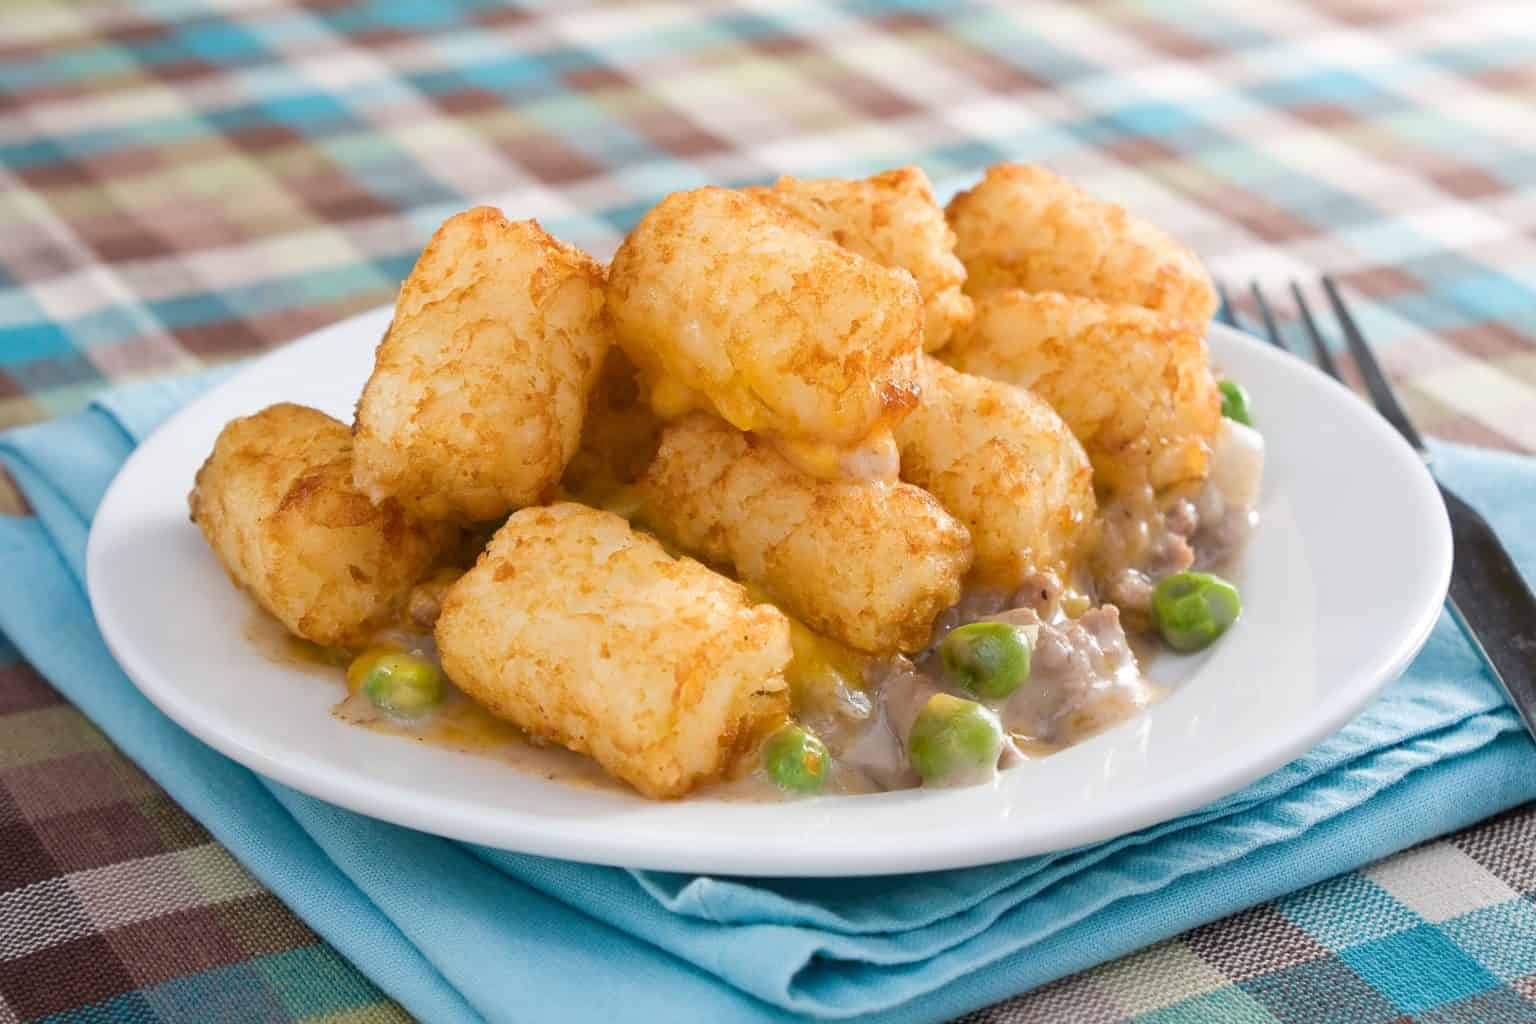 A plate of tater tot casserole